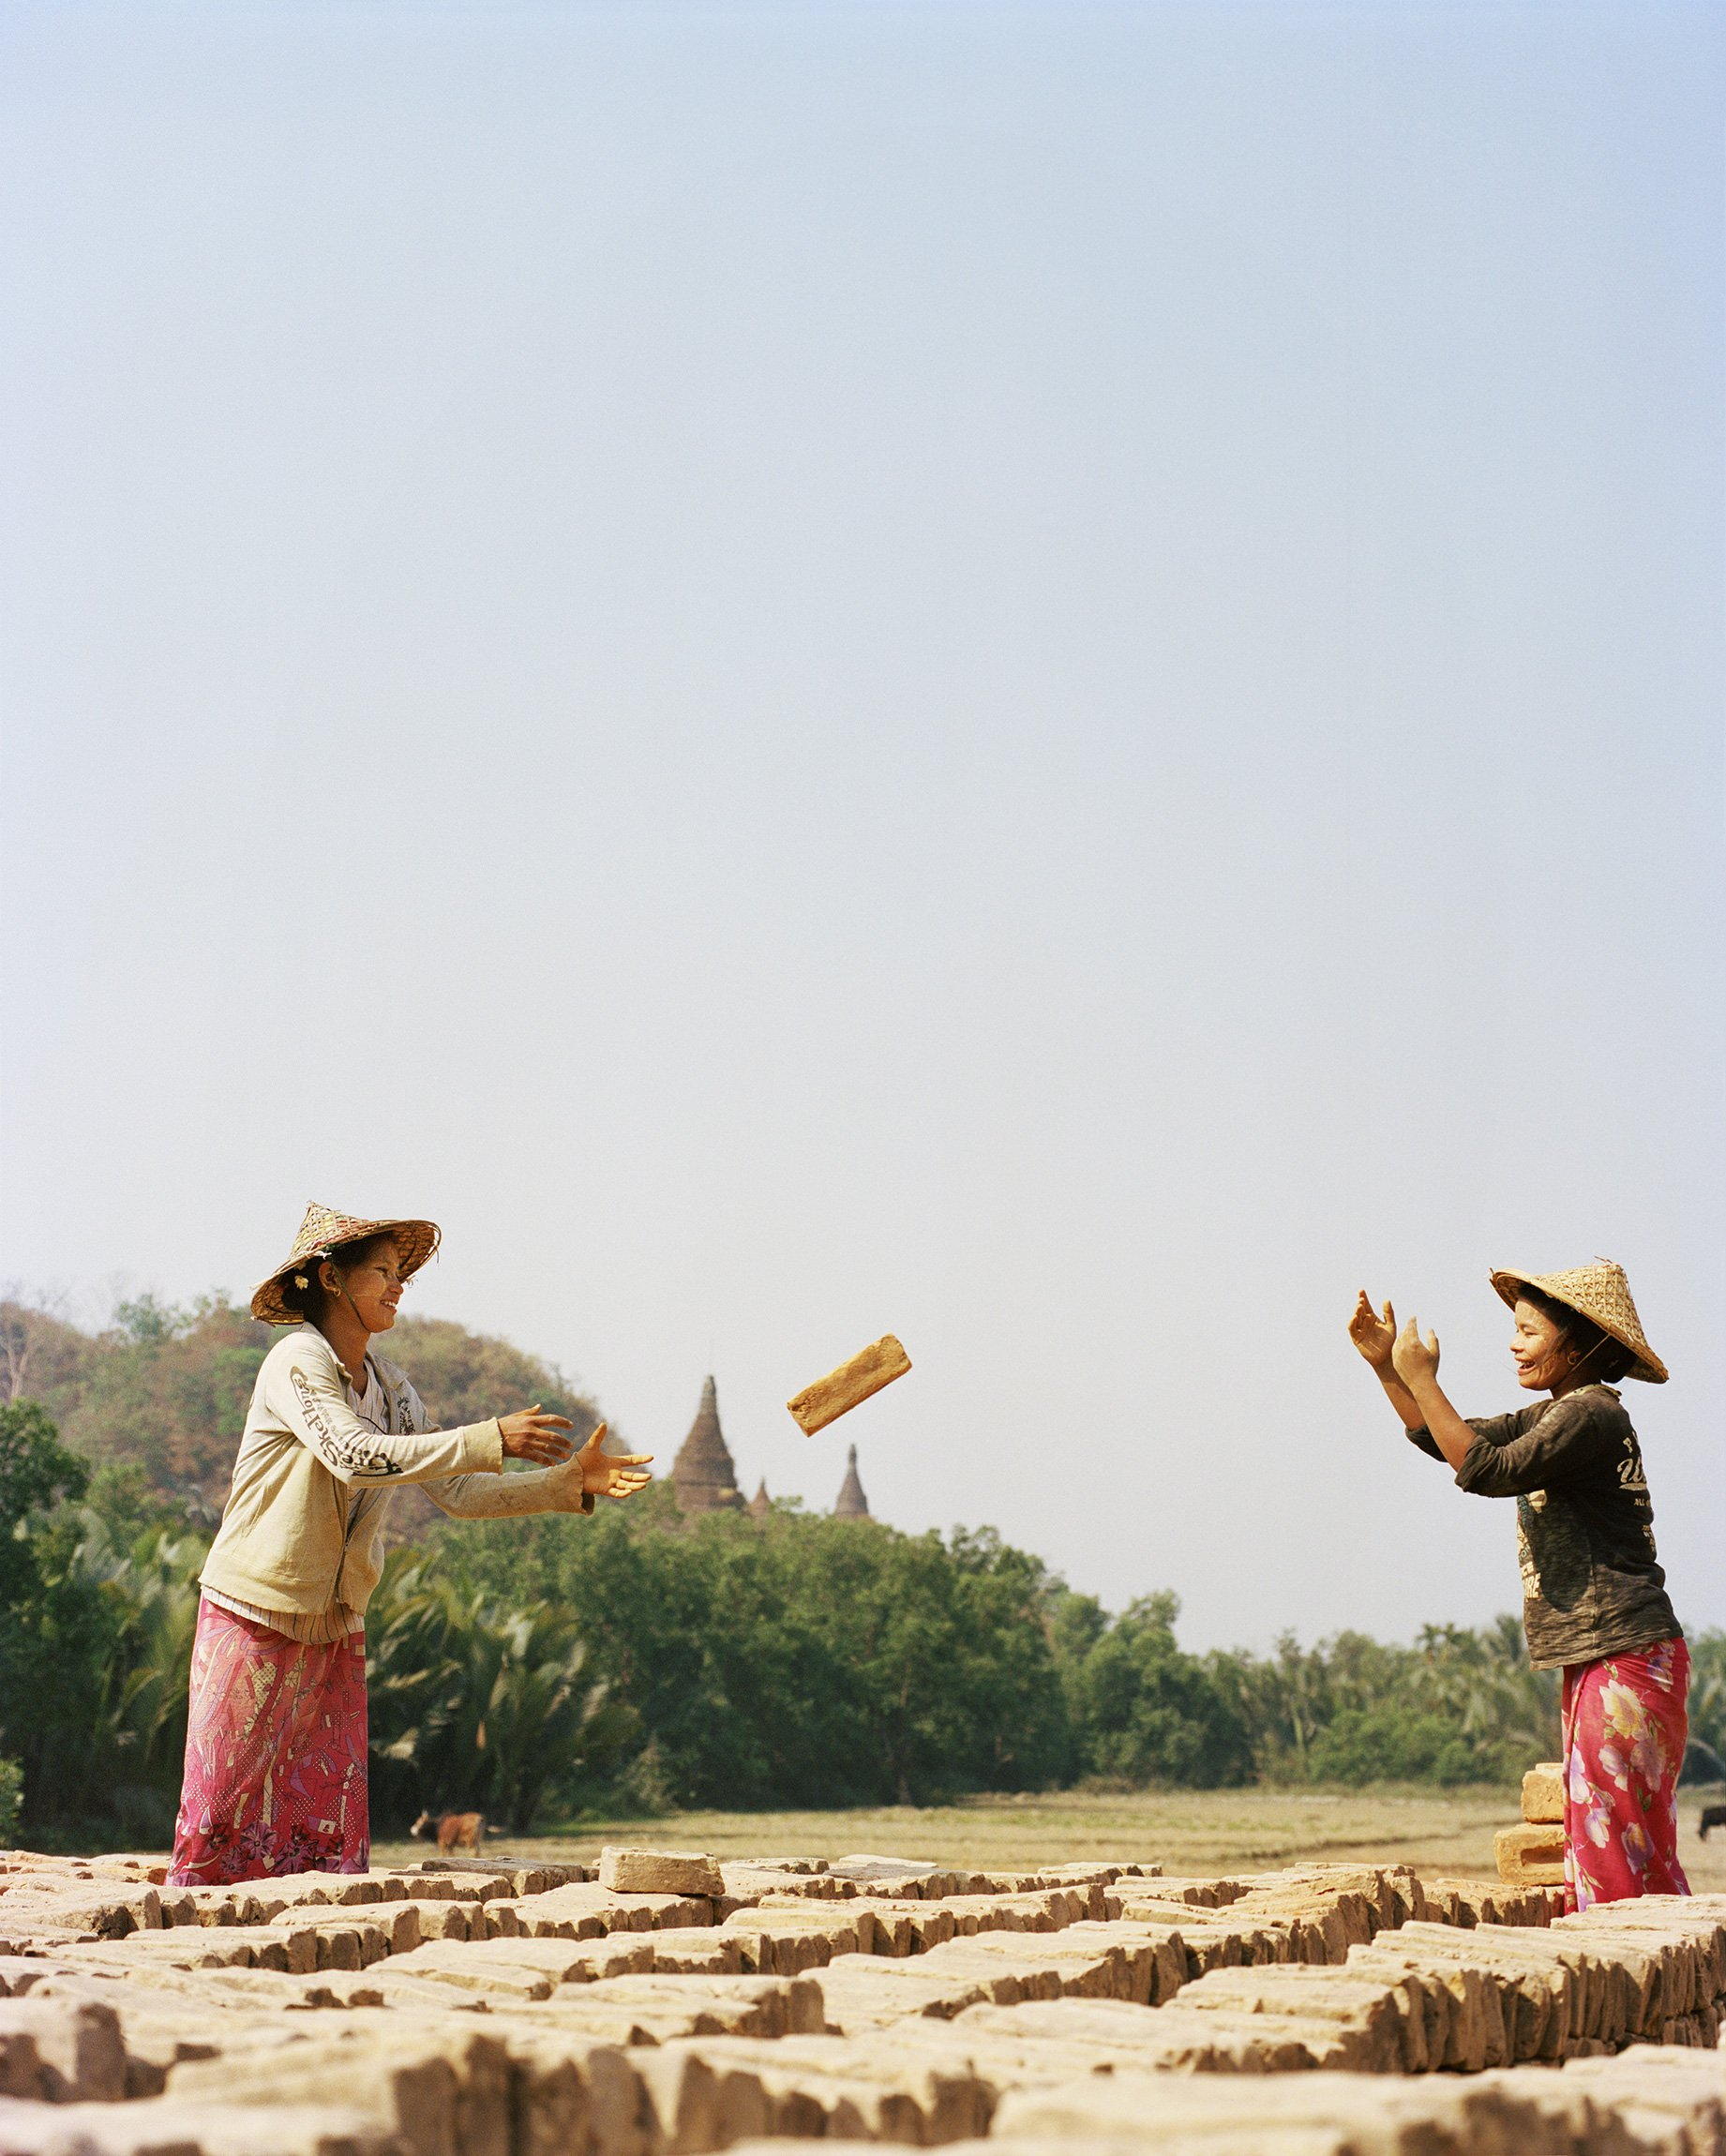 woman working color photography in Myanmar by Frédéric Lagrange